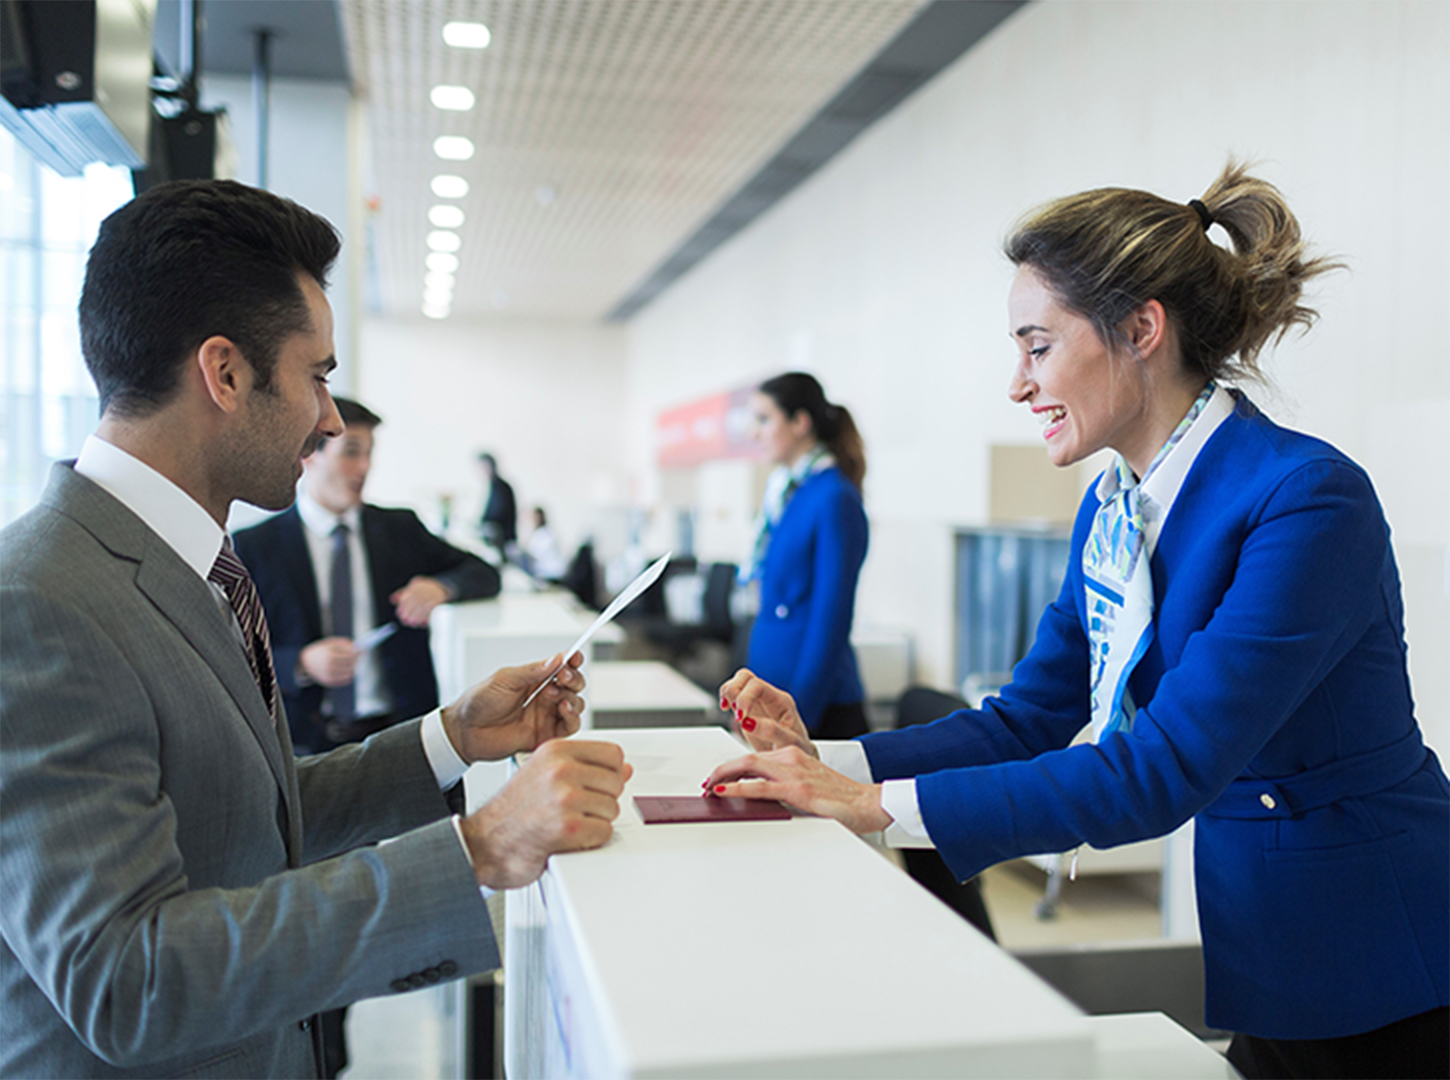 What Makes Corporate Travel Management So Reliable?